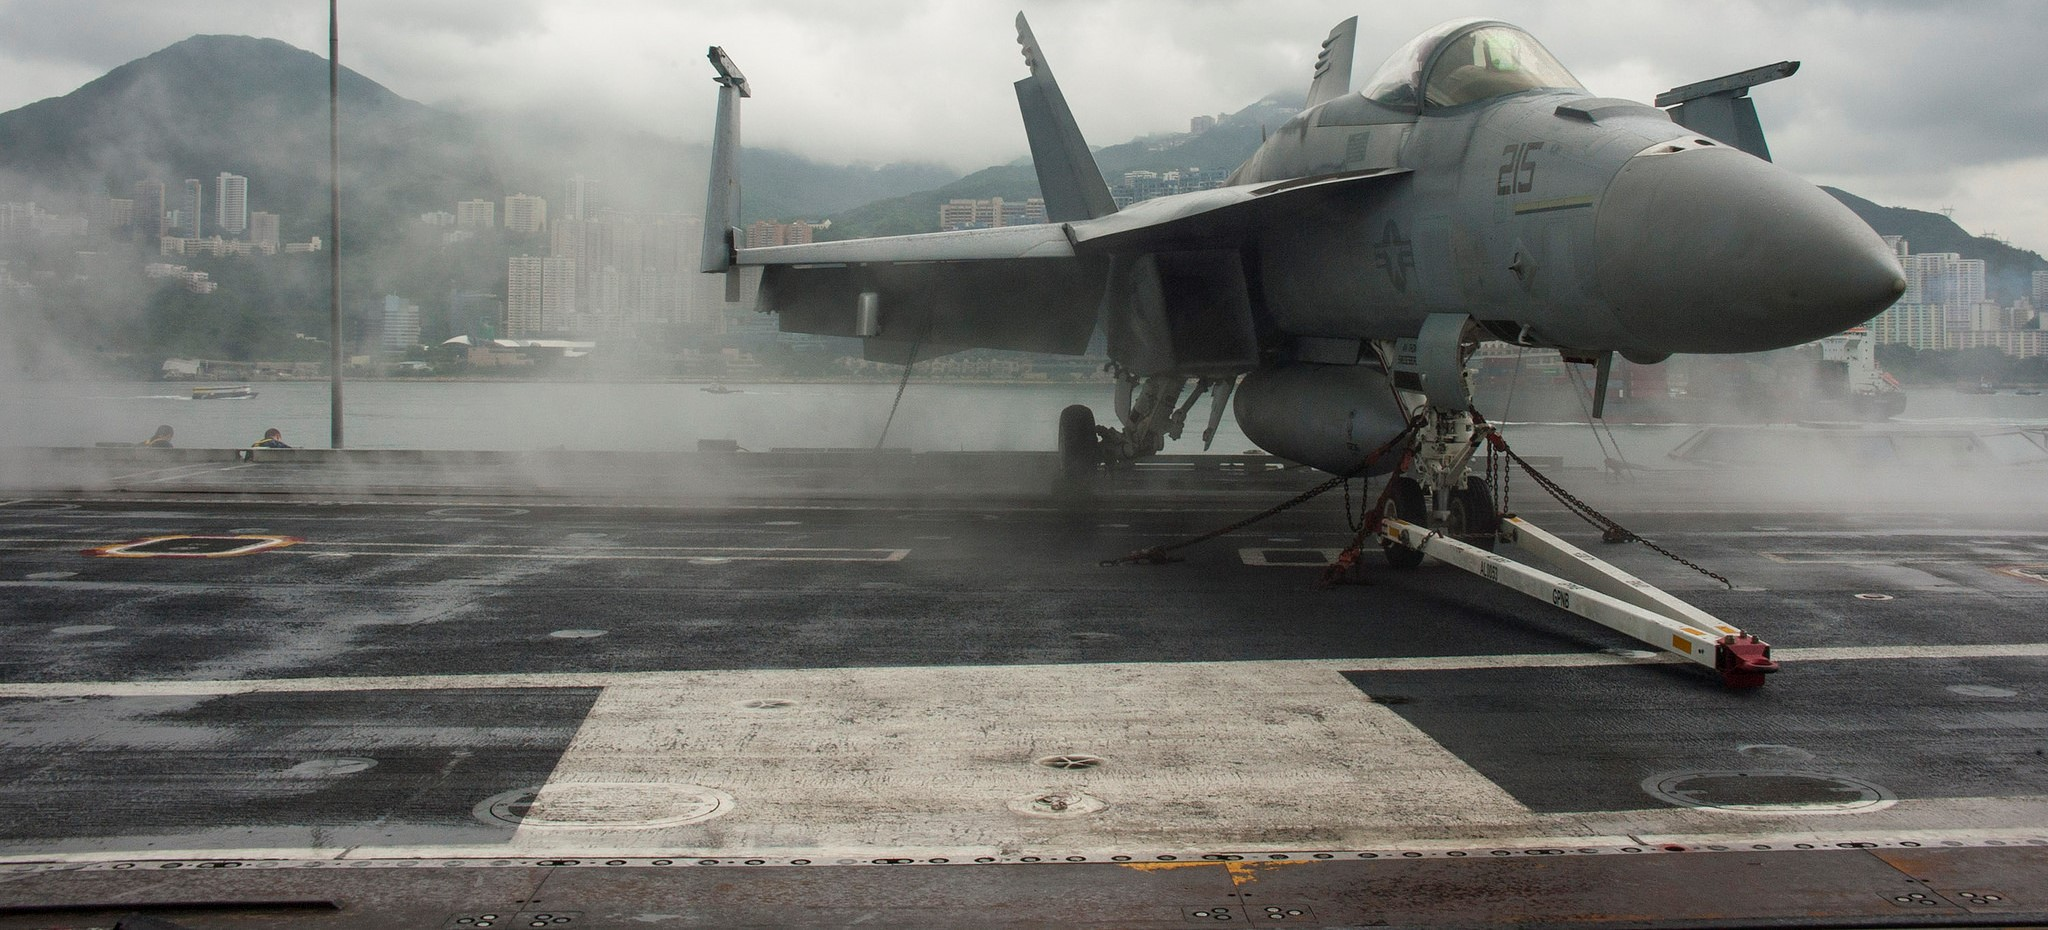 An F/A-18E Super Hornet on the USS George Washington in Hong Kong, June 2014 (Photo: Flickr/US Navy)